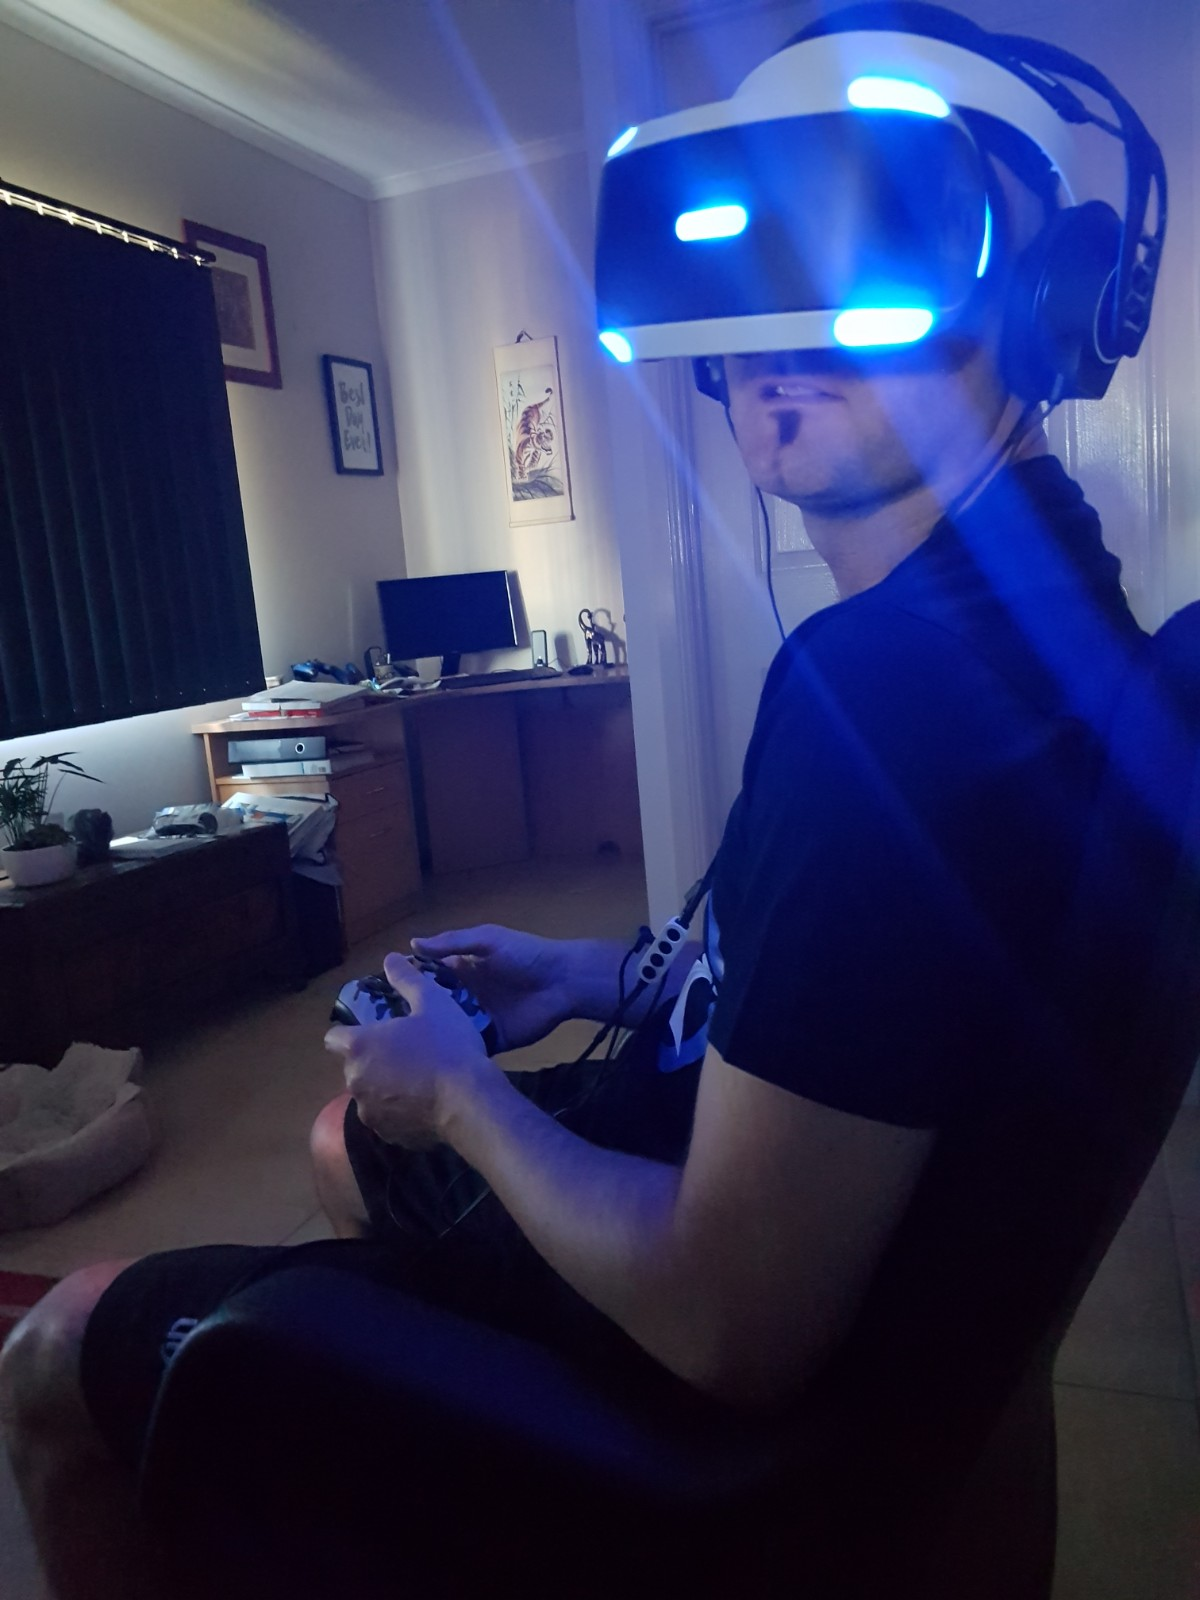 Mr Ghostly immersed into the virtual reality world